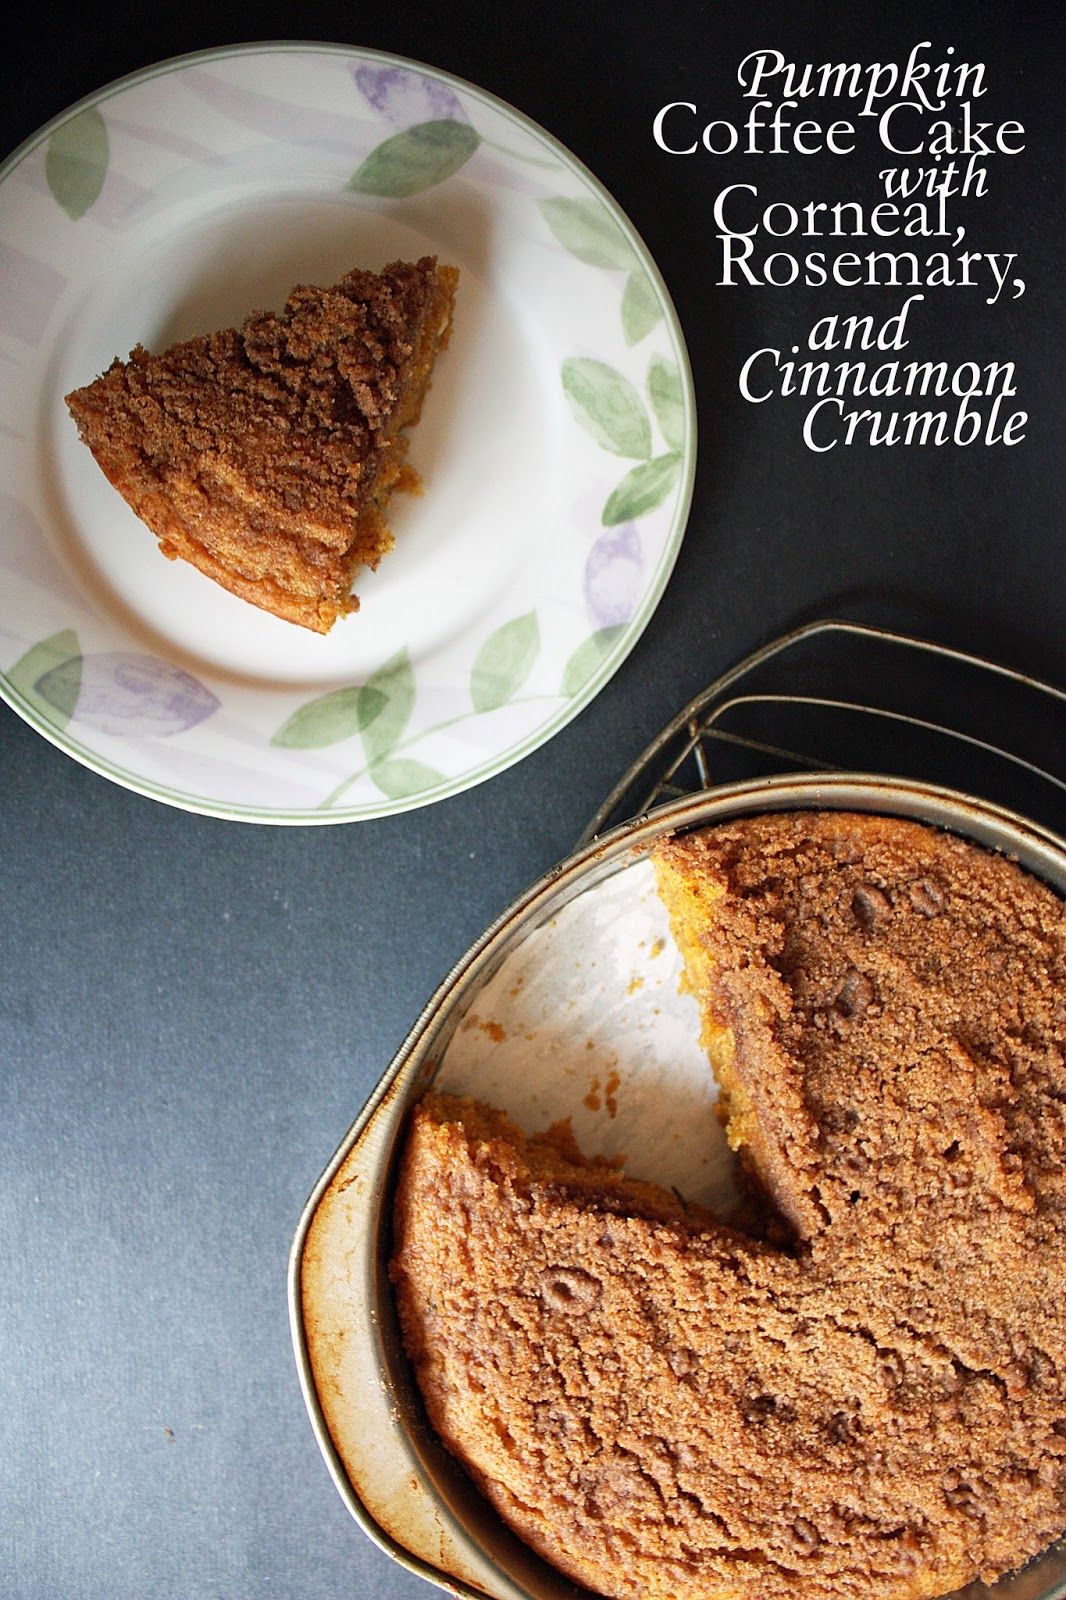 pumpkin coffee cake with rosemary, cornmeal, and cinnamon crumble